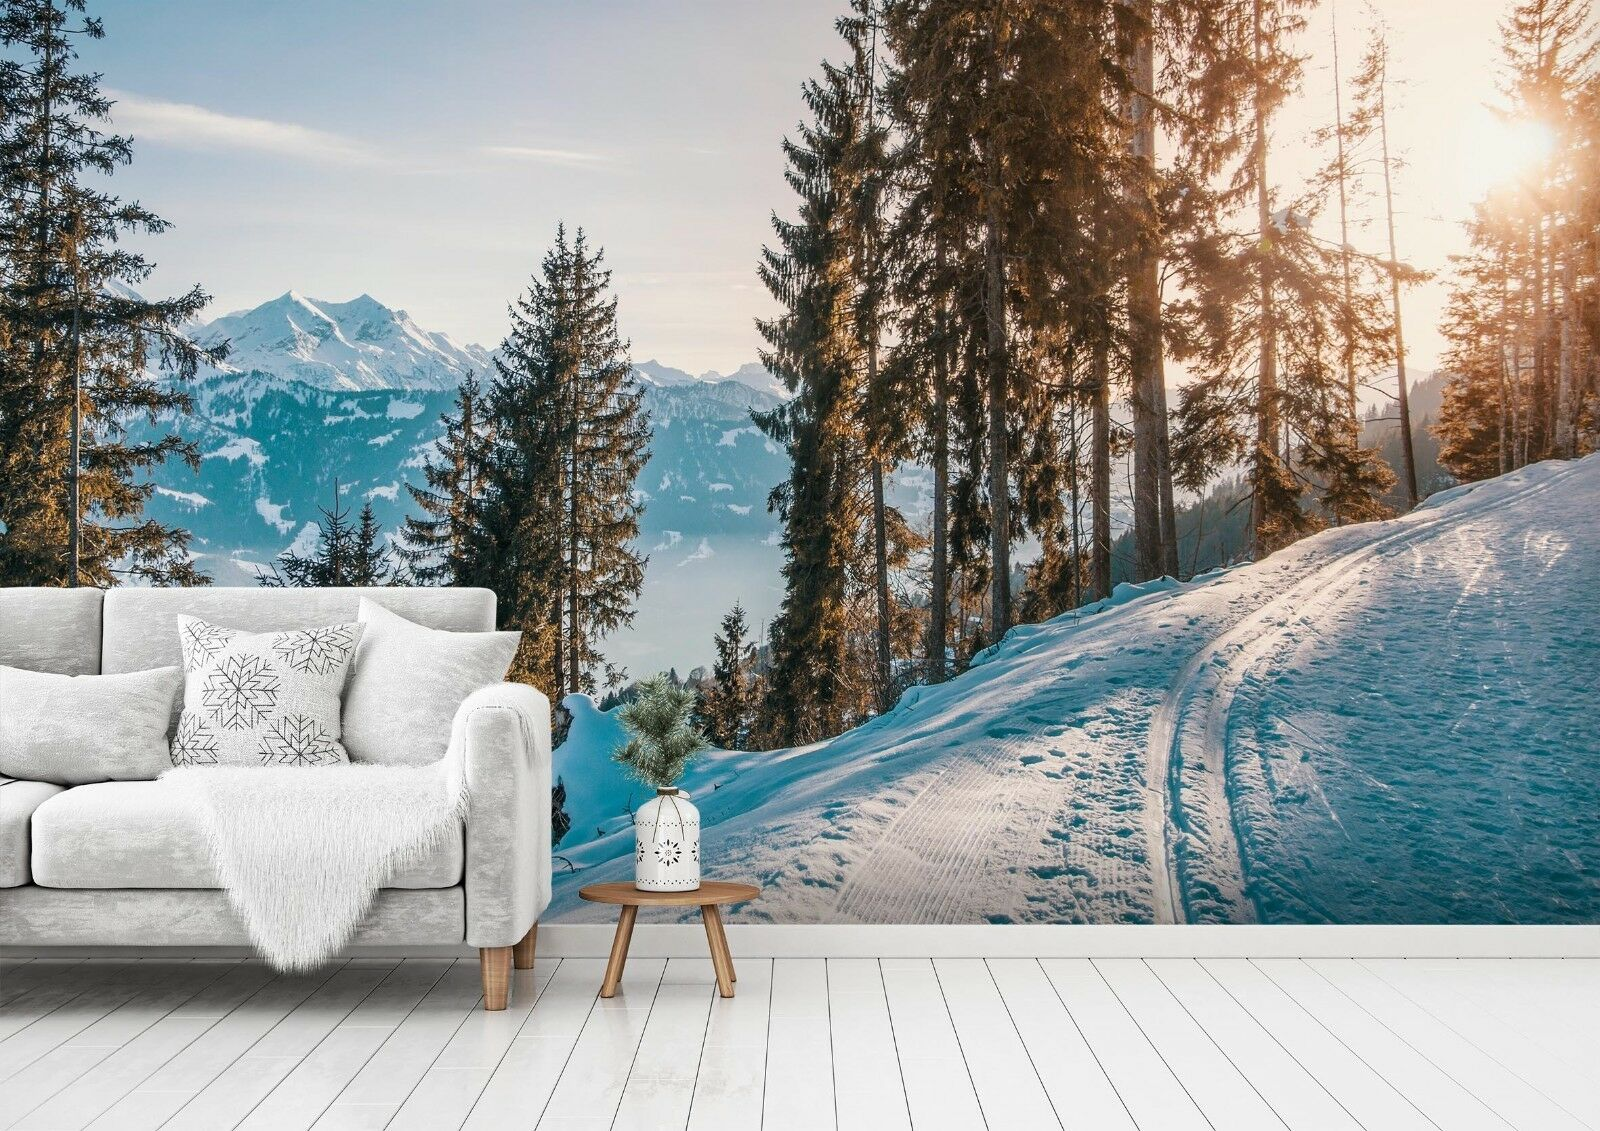 3D Snow Tree 7104 Wall Paper Print Wall Decal Deco Indoor Wall Murals US Summer